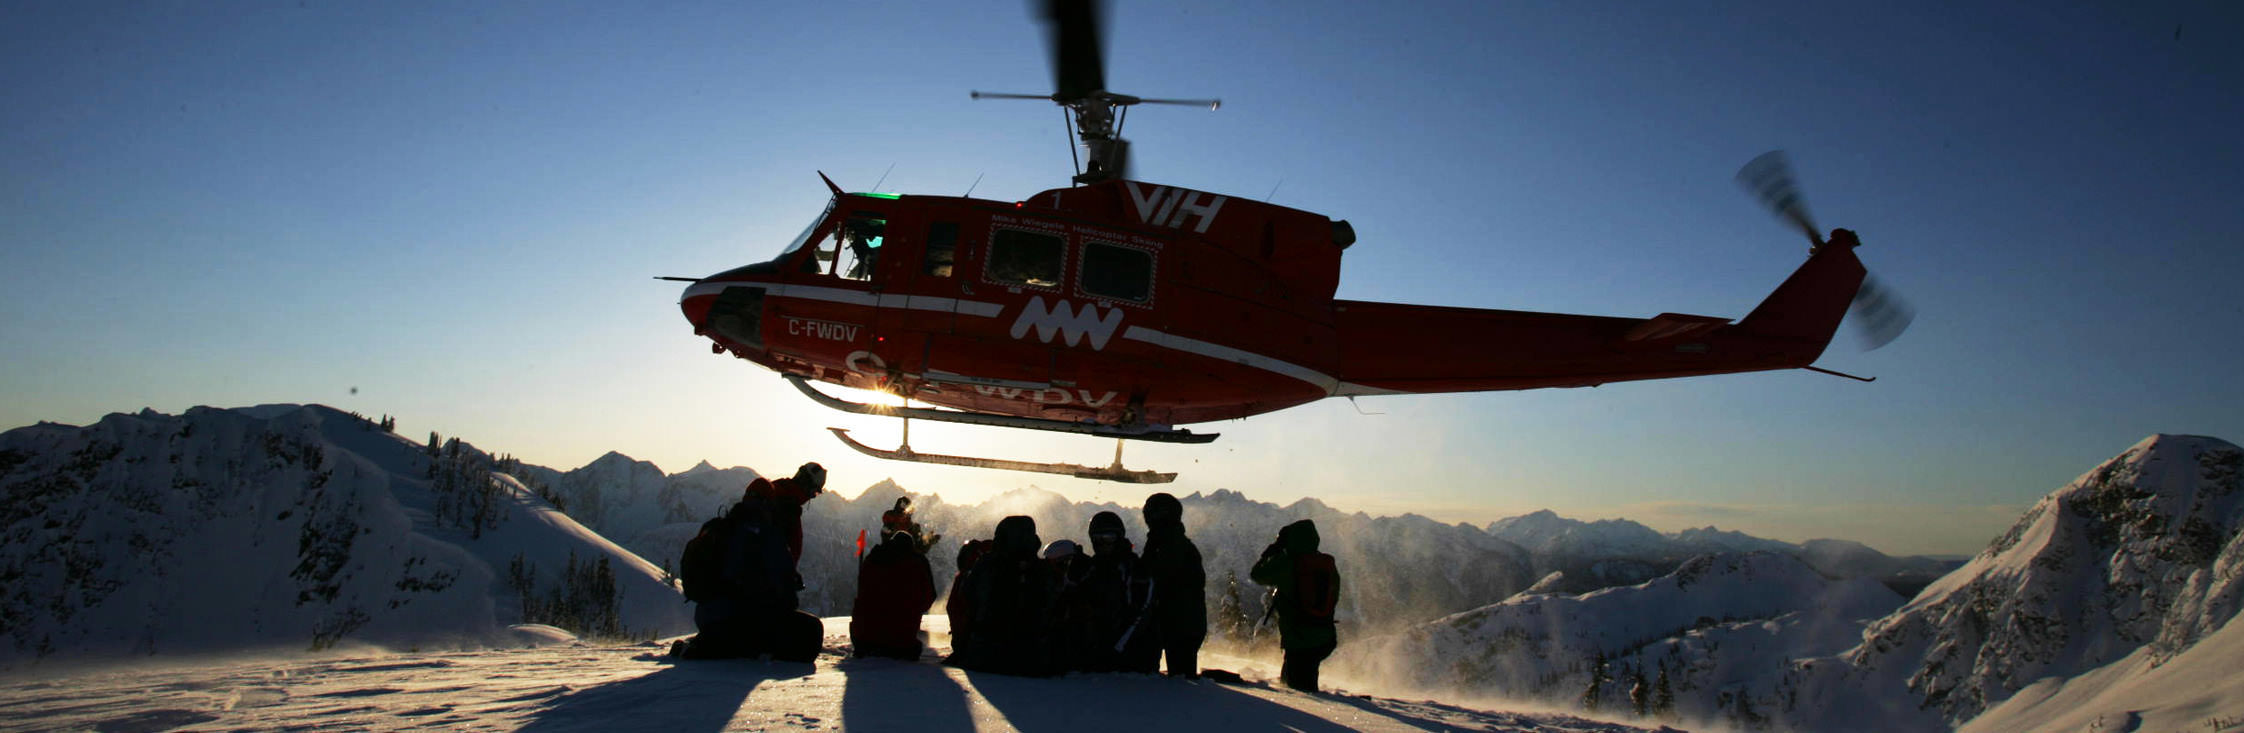 sliderbild_small_mwhs-helicopter-group-mountains